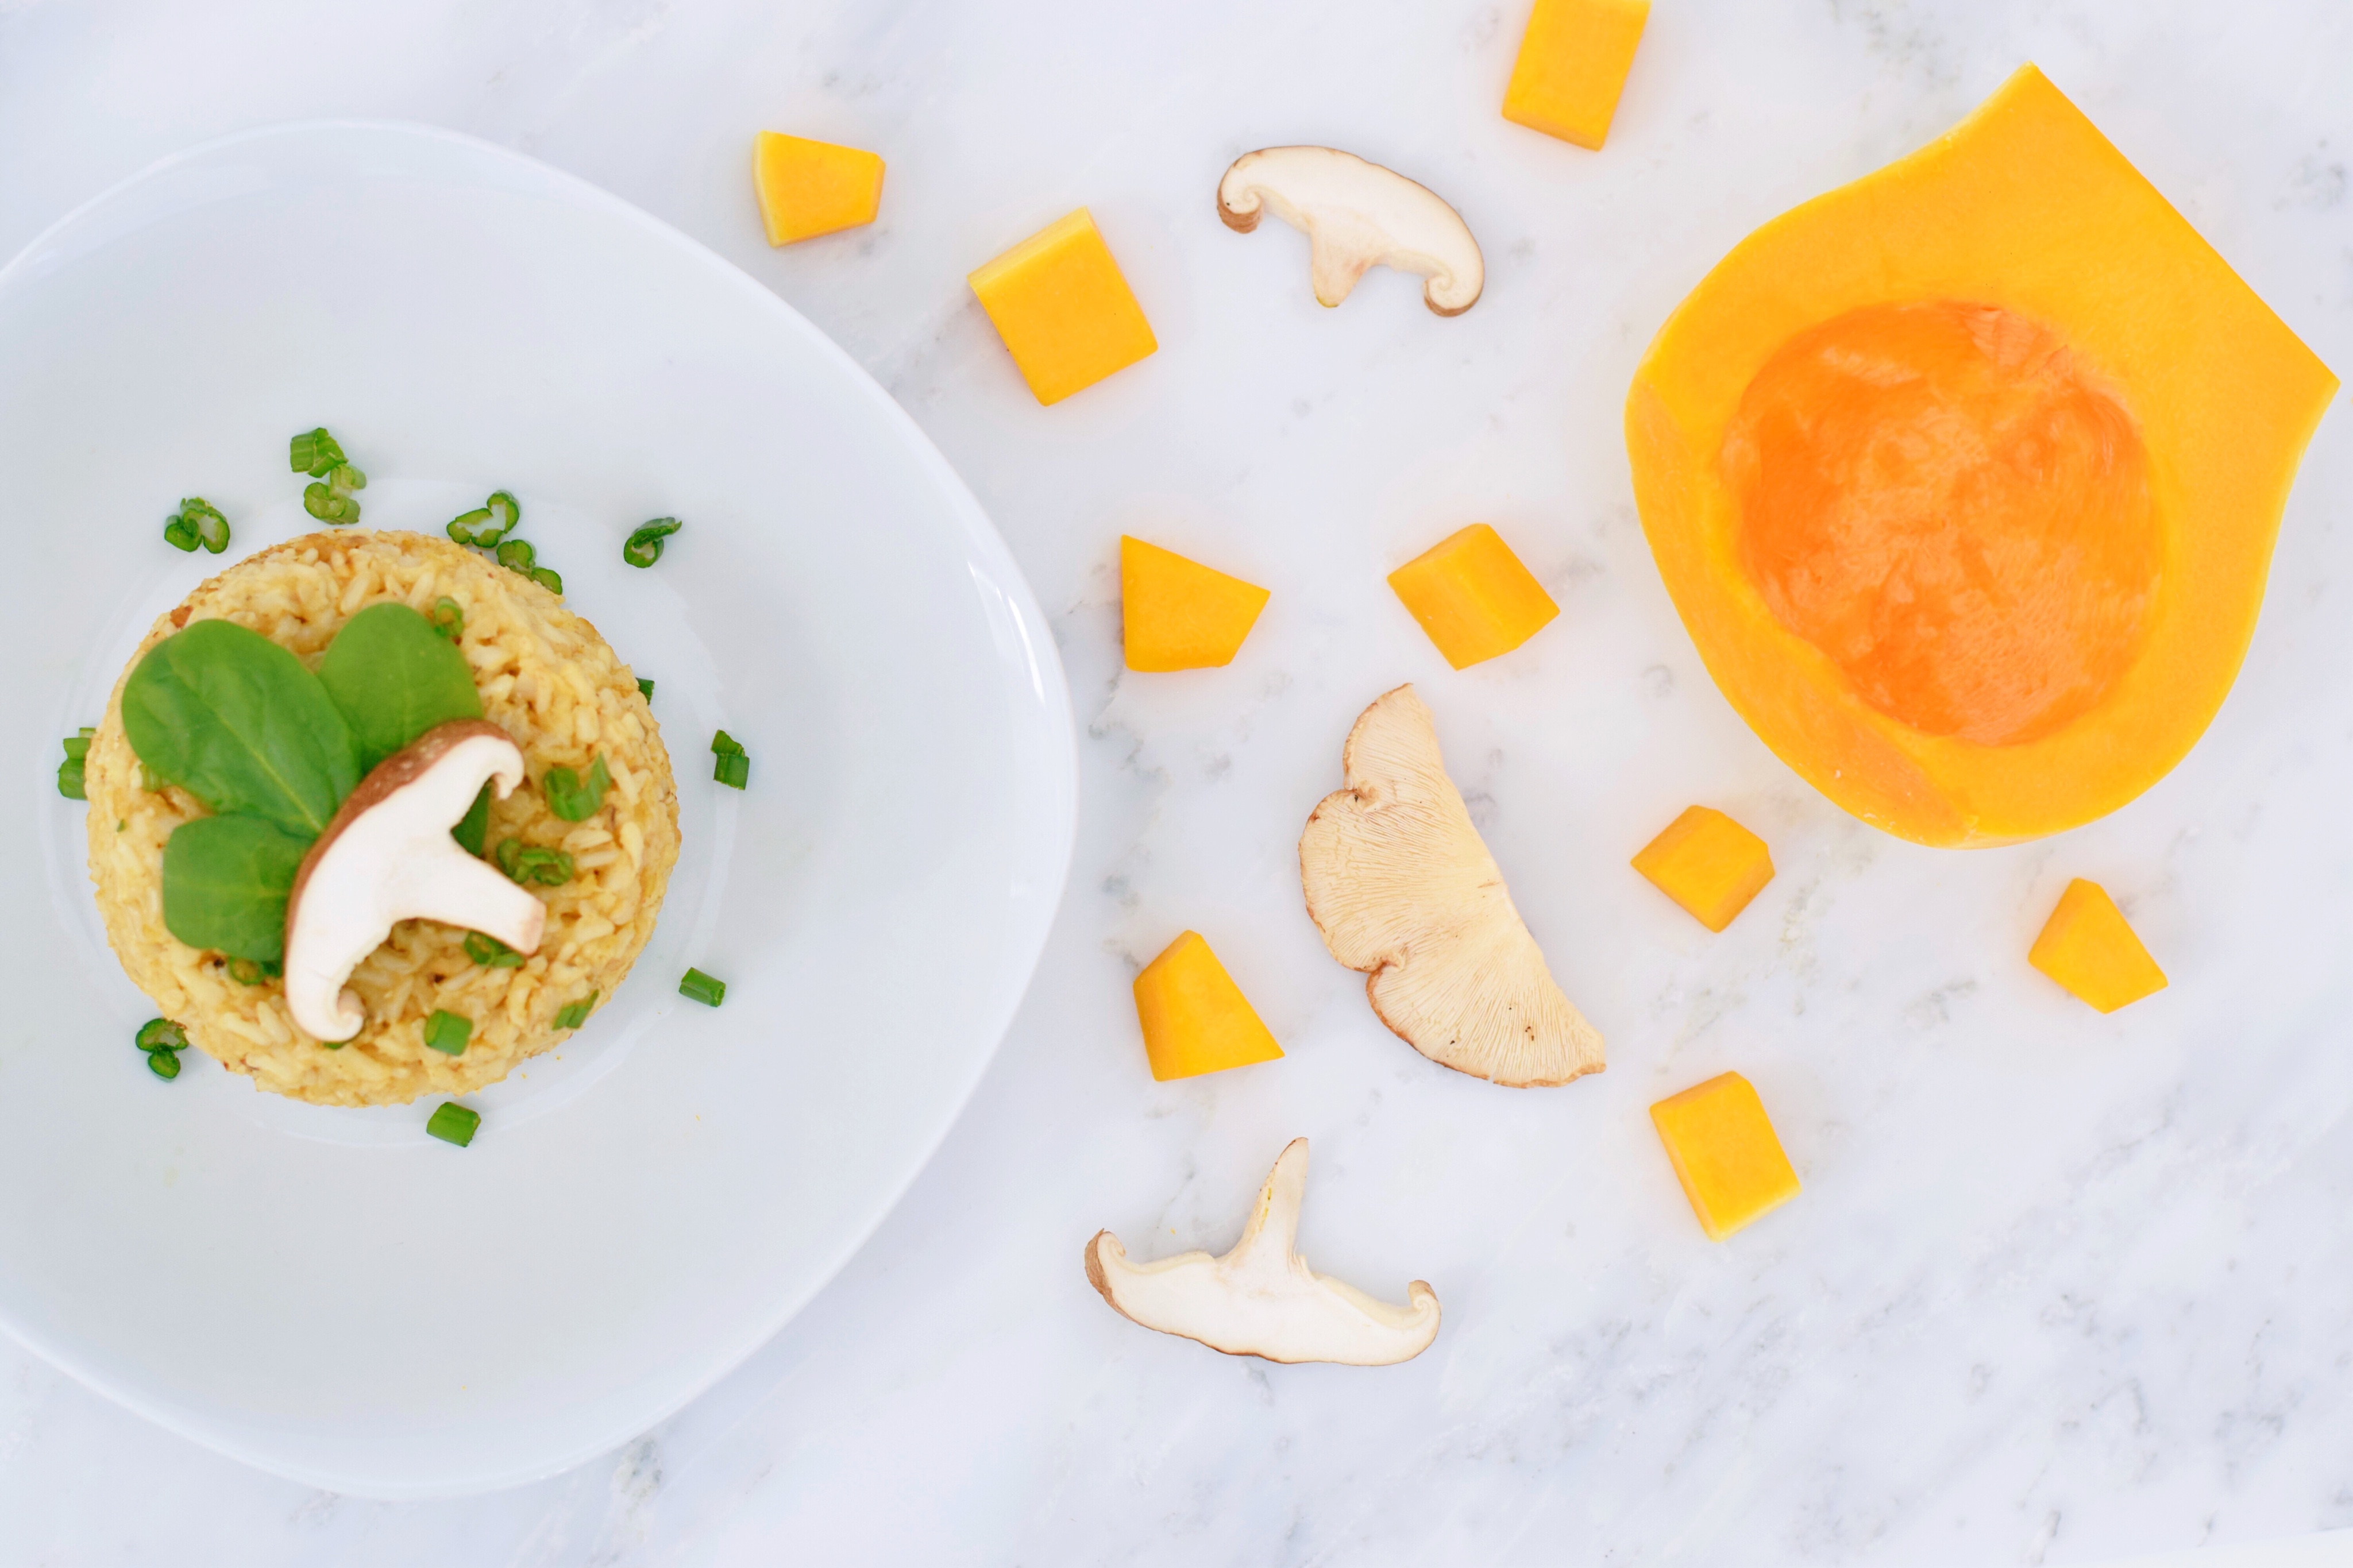 Butternut Squash Shiitake Mushroom Recipe Kid approved healthy family meals